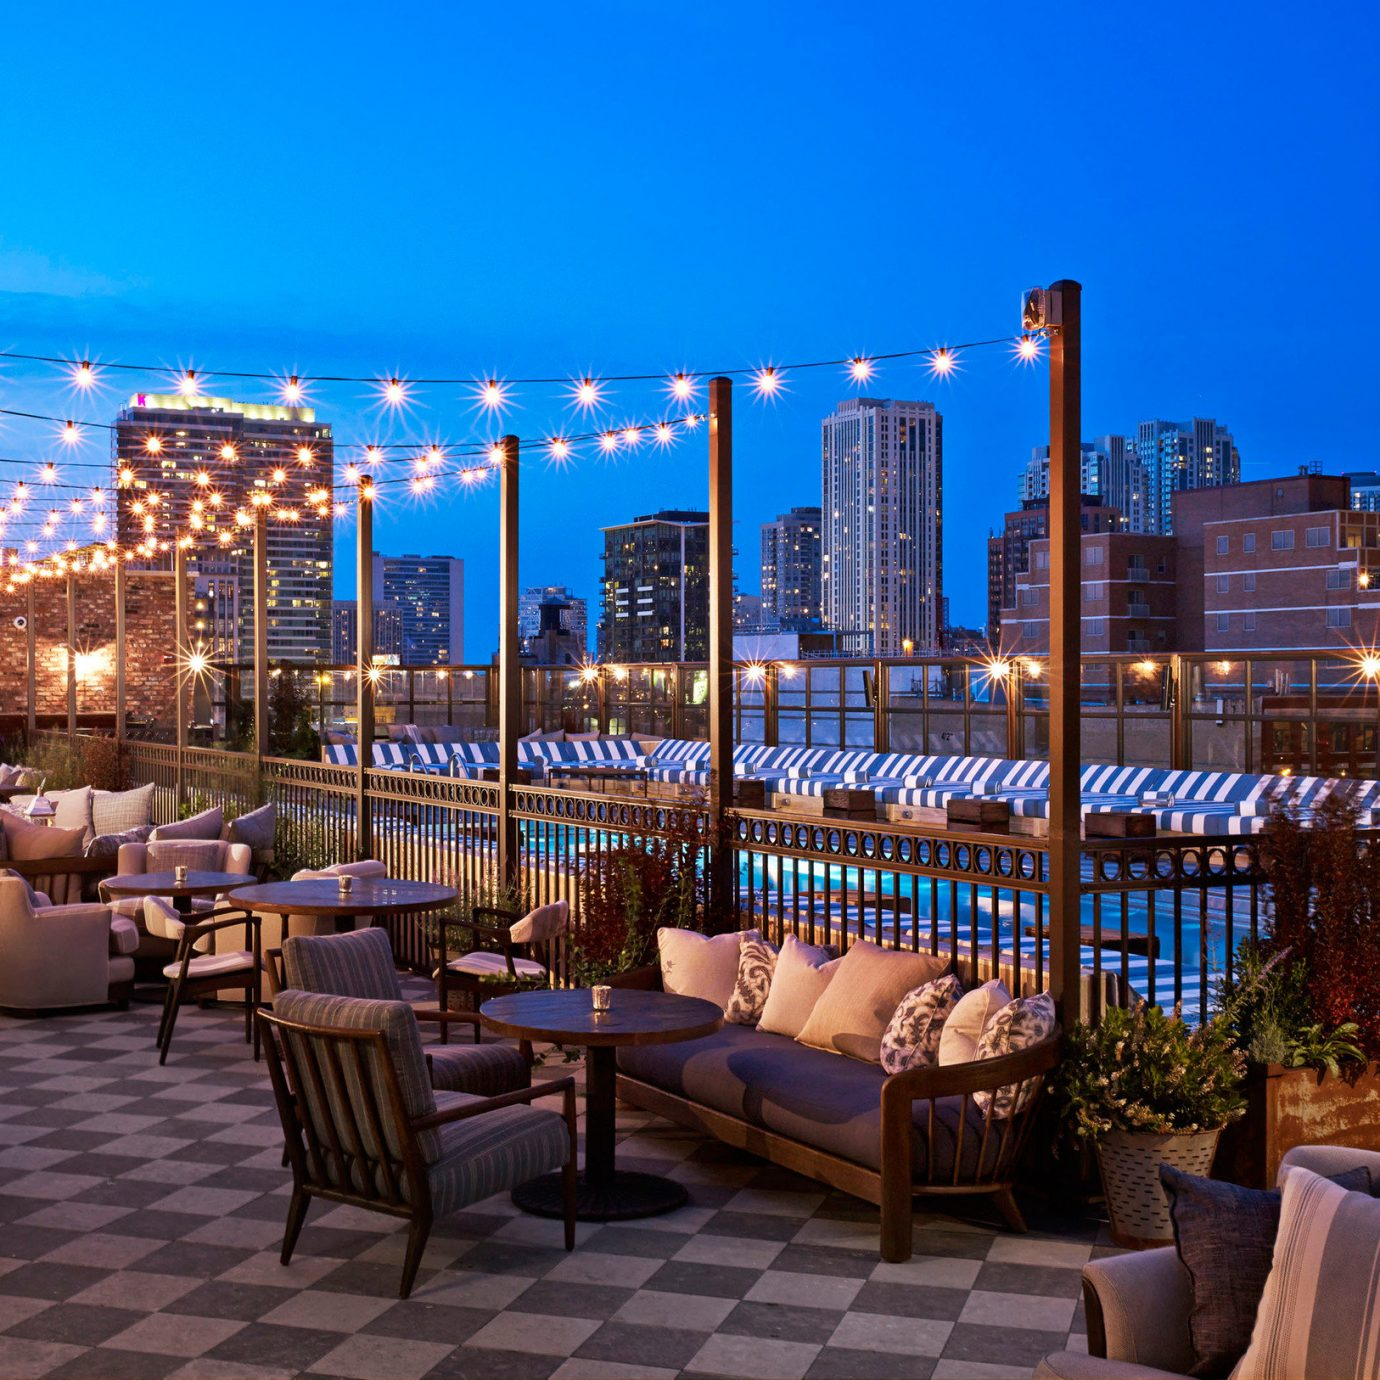 Boutique Hotels Chicago Hotels Trip Ideas sky outdoor Resort plaza City evening marina estate cityscape condominium restaurant overlooking area furniture several